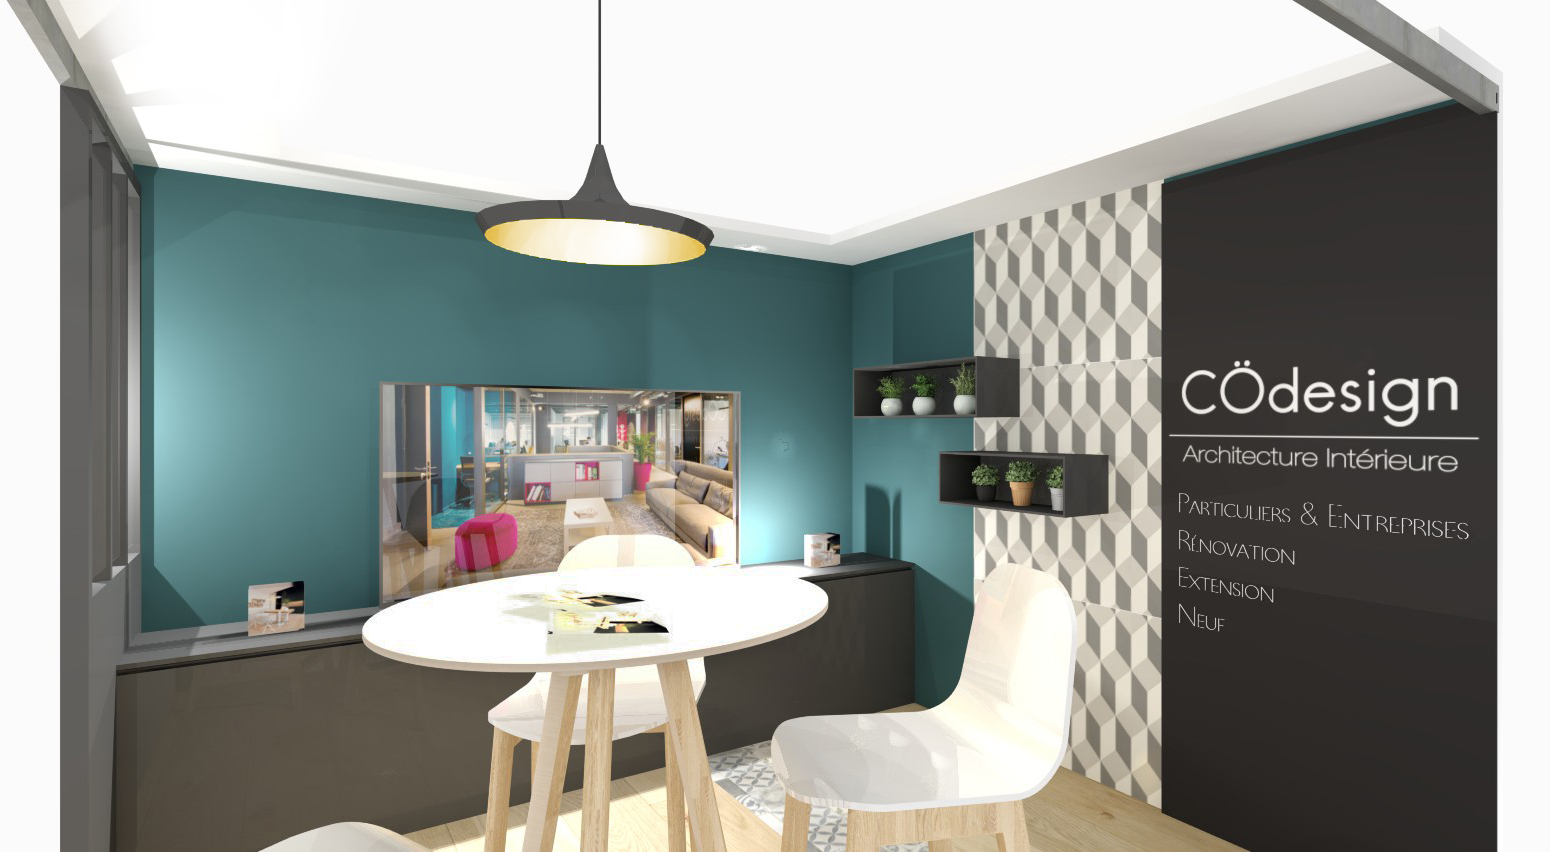 cdesign prsent au salon habitat angers